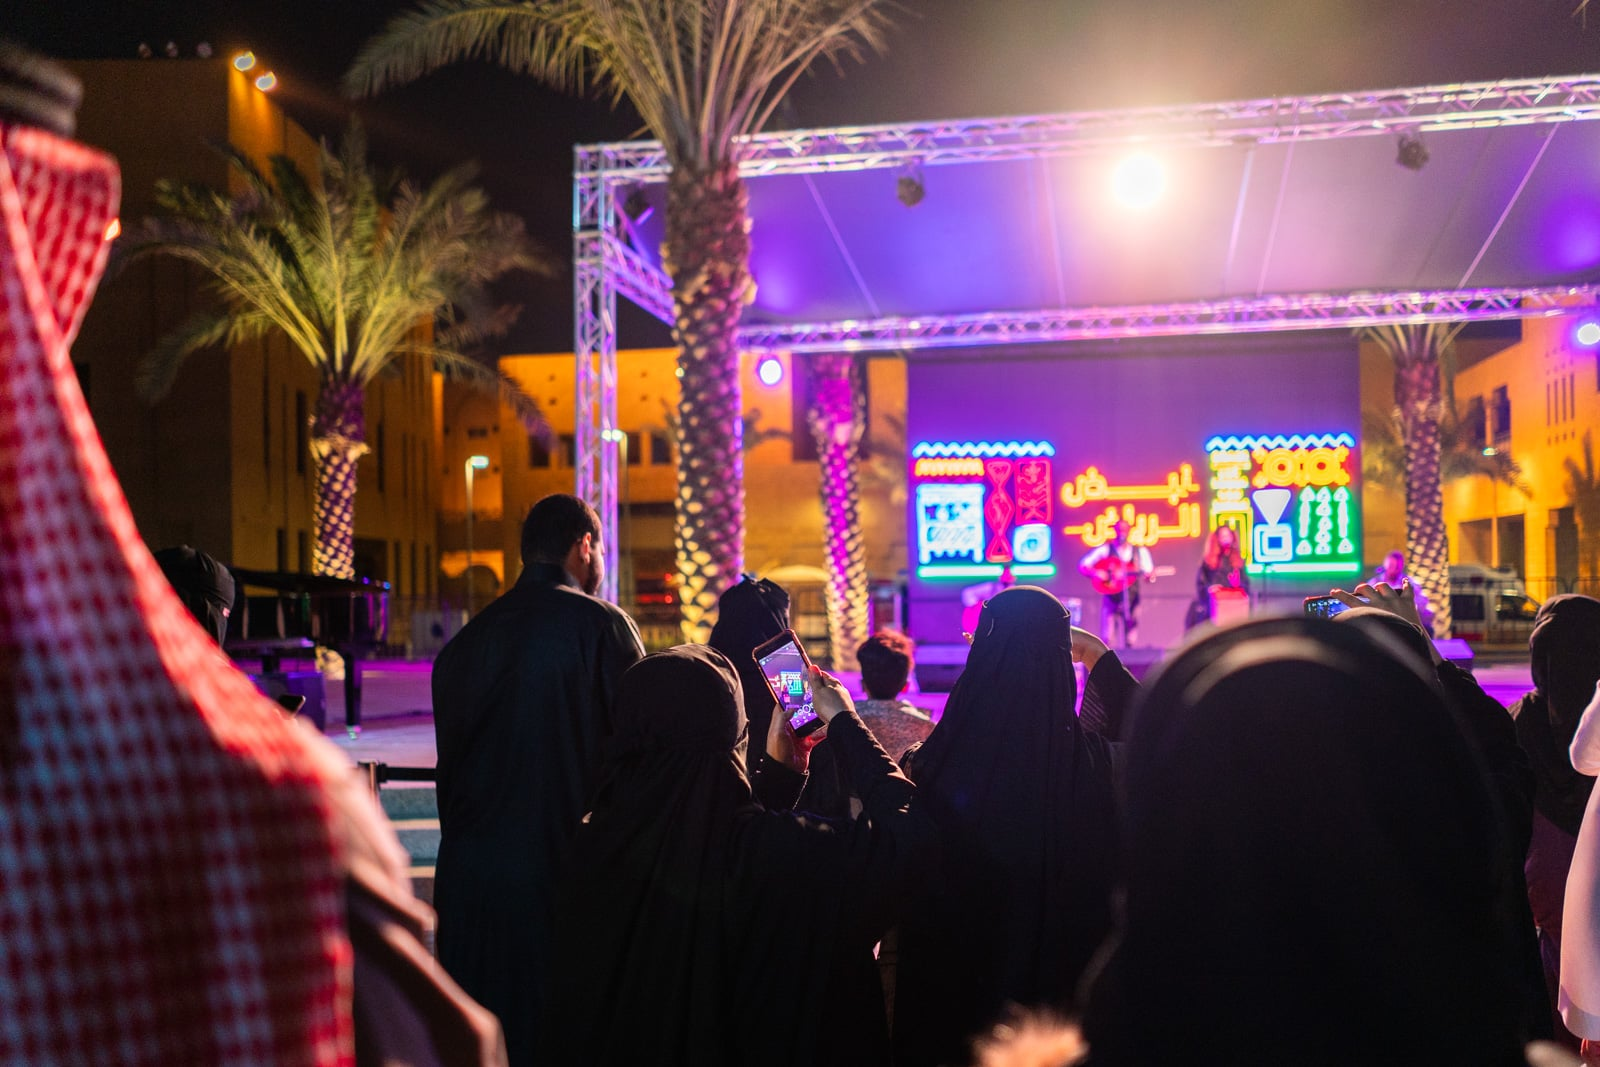 Women filming a concert on their mobiles in Riyadh, Saudi Arabia